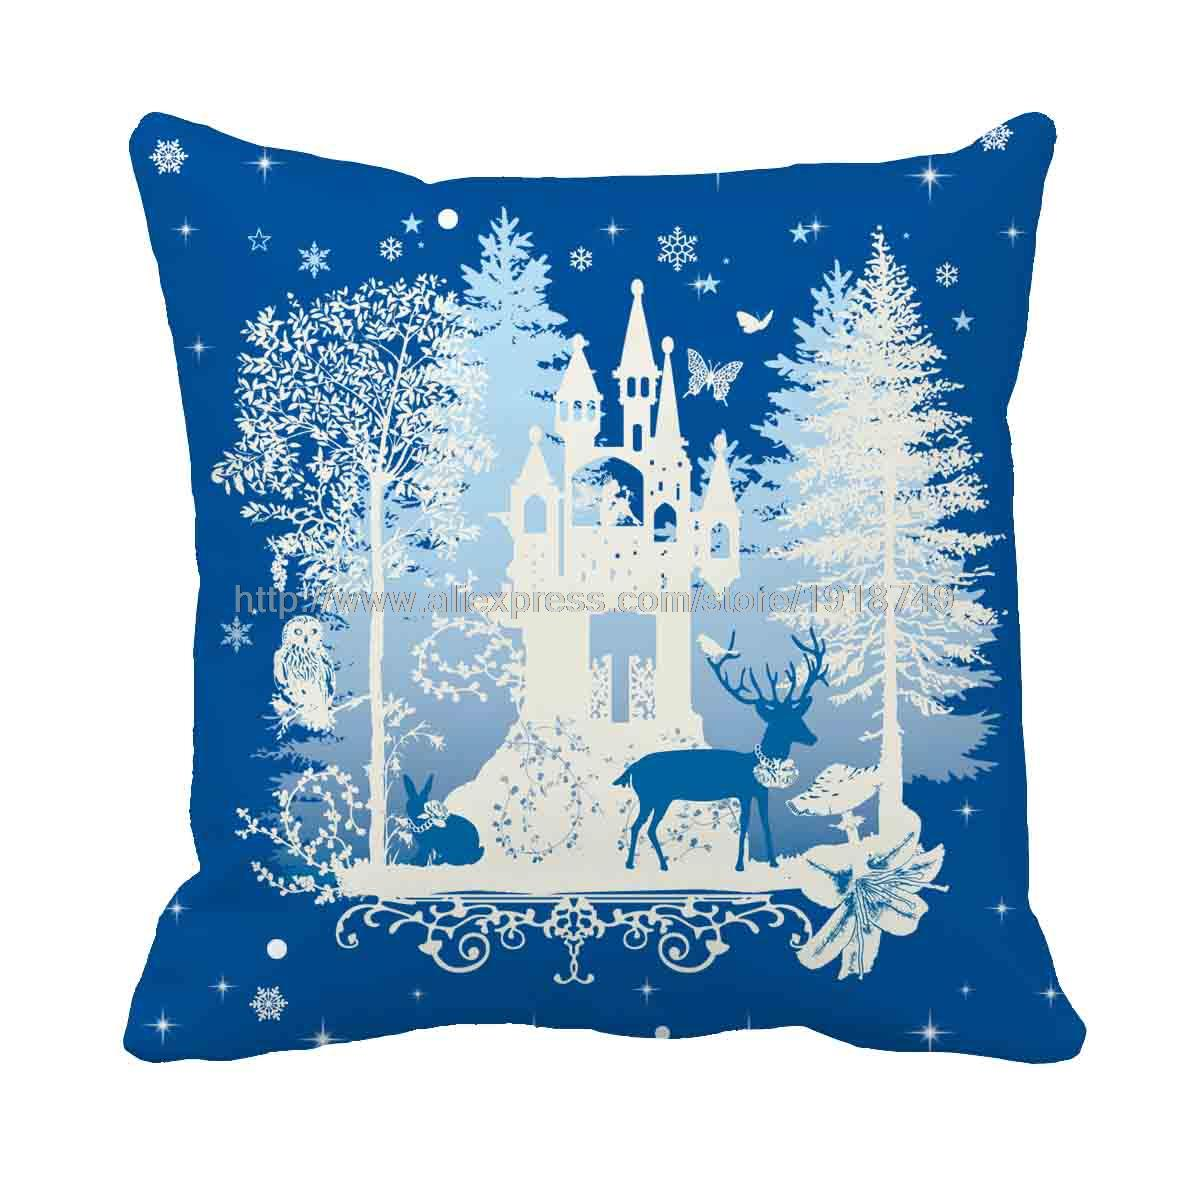 Chair Covers At Christmas Tree Shop Desk Lumbar Pillow Aliexpress Buy Trees Around The Castle Custom Home